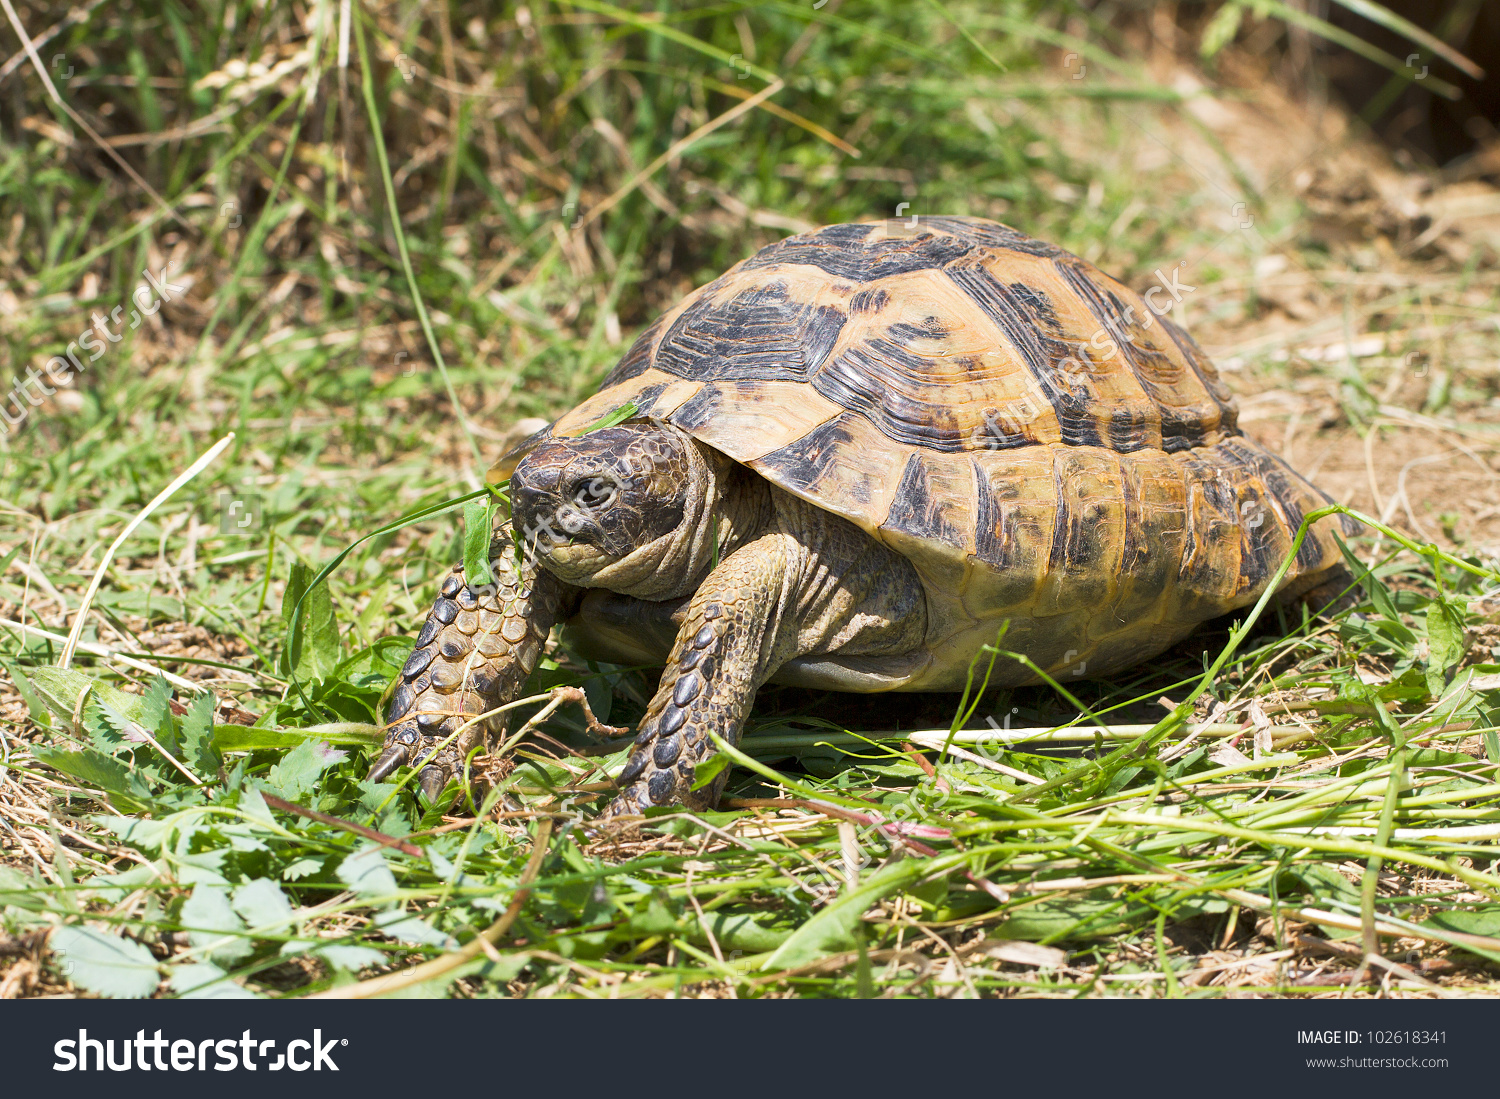 Spurthighed Turtle Eating Grass Testudo Graeca Stock Photo.